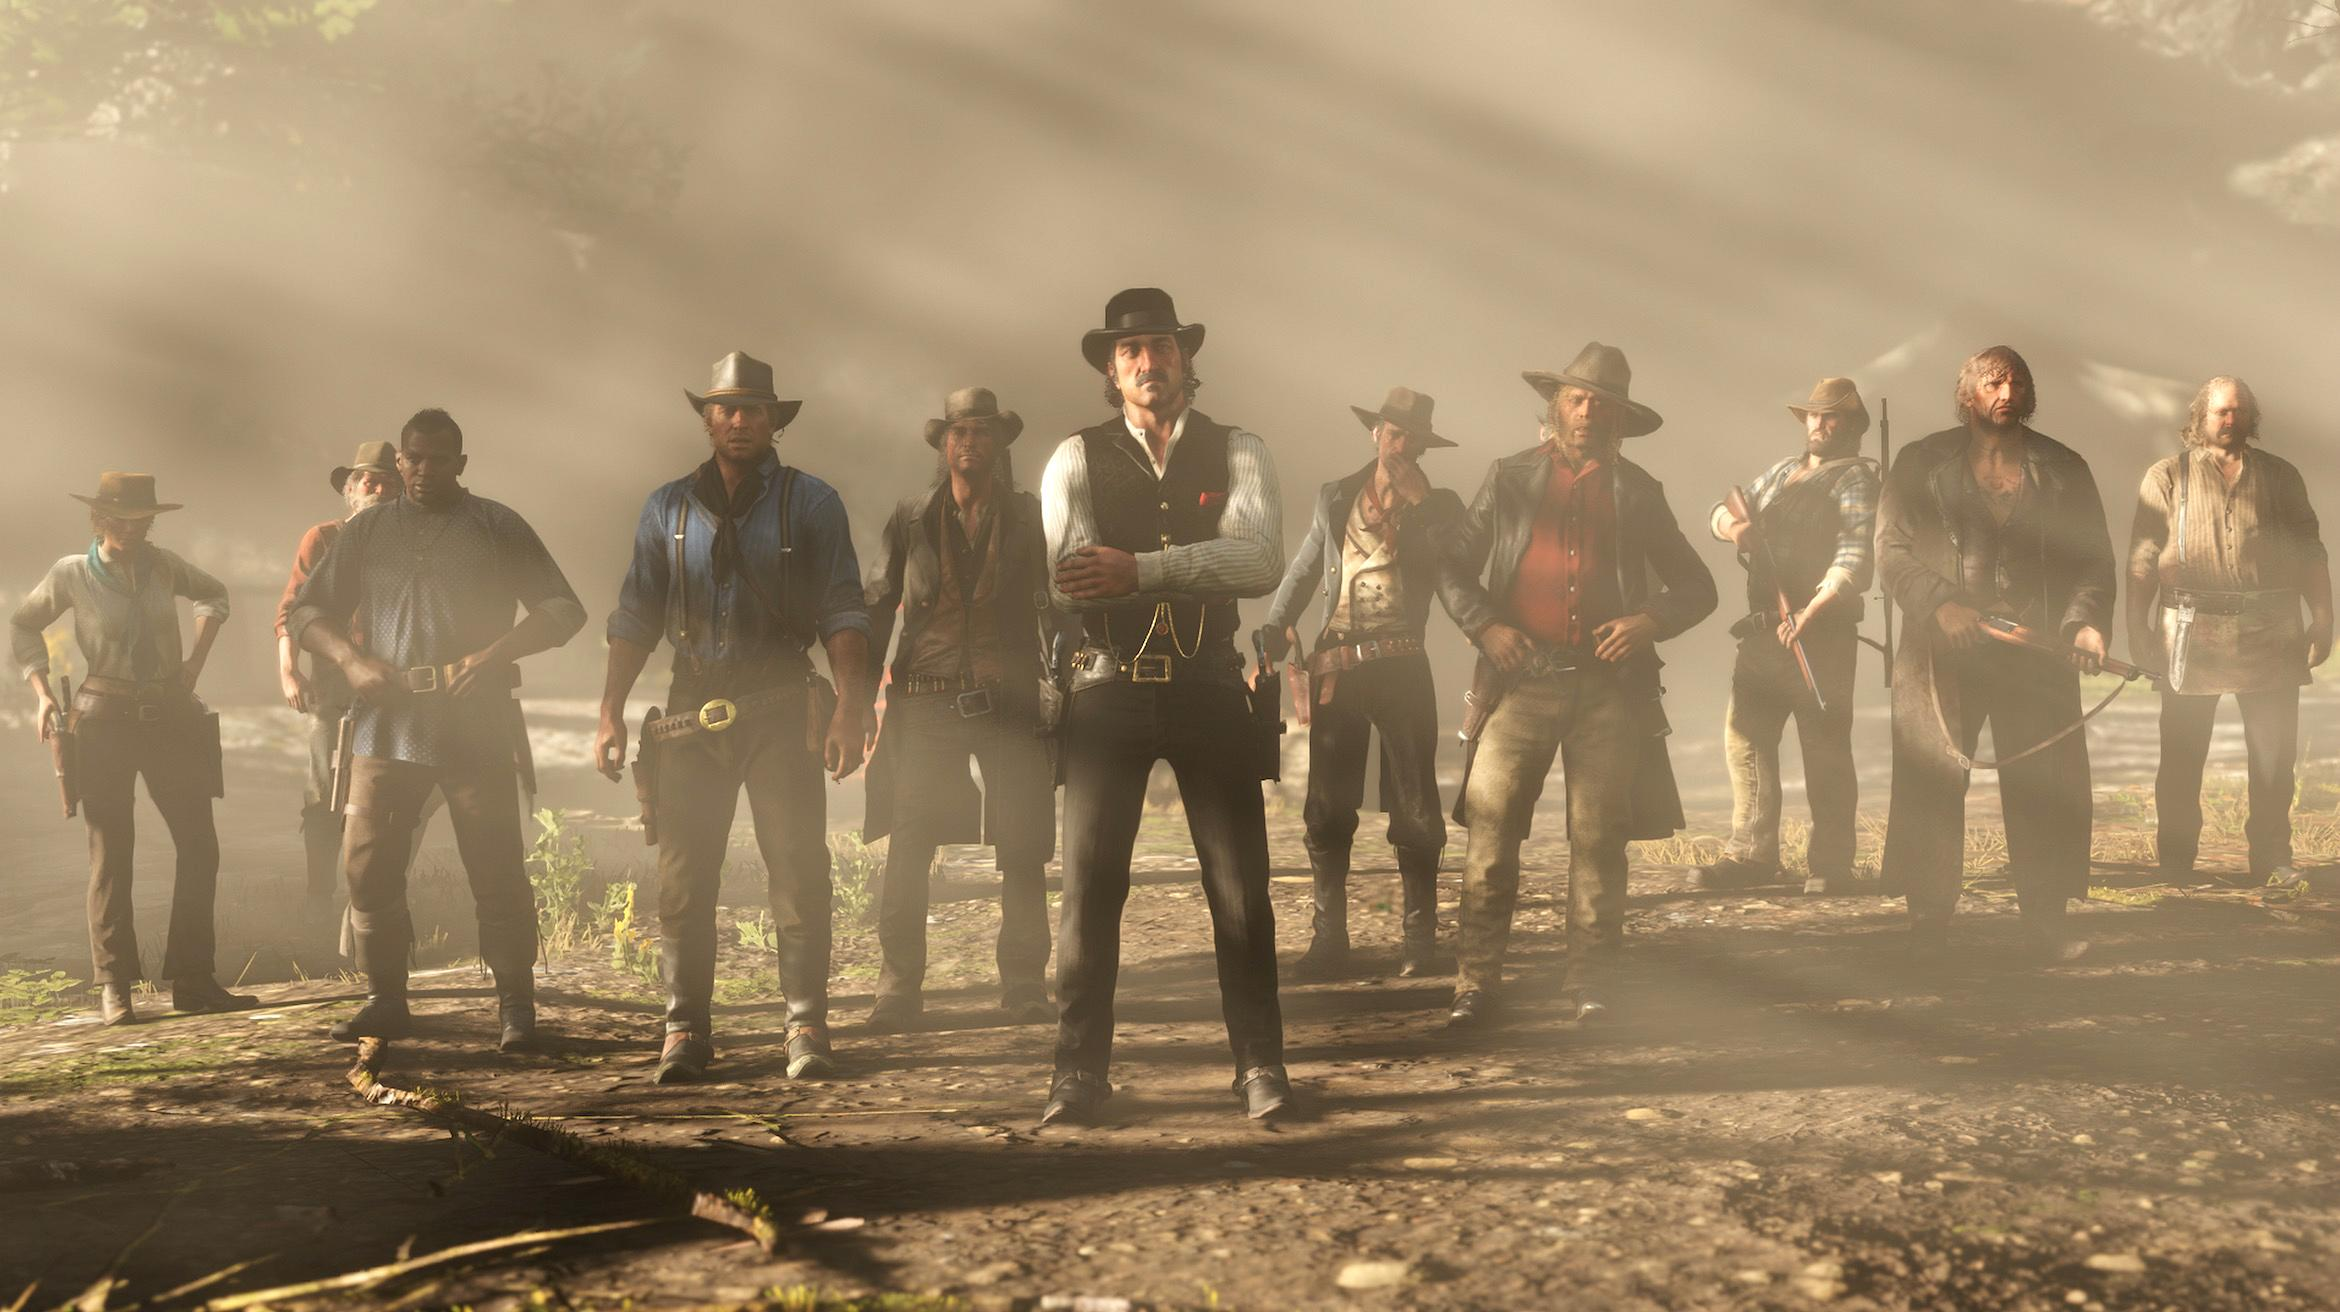 Red Dead Redemption 2 cast: Meet the voice actors behind the band of outlaws